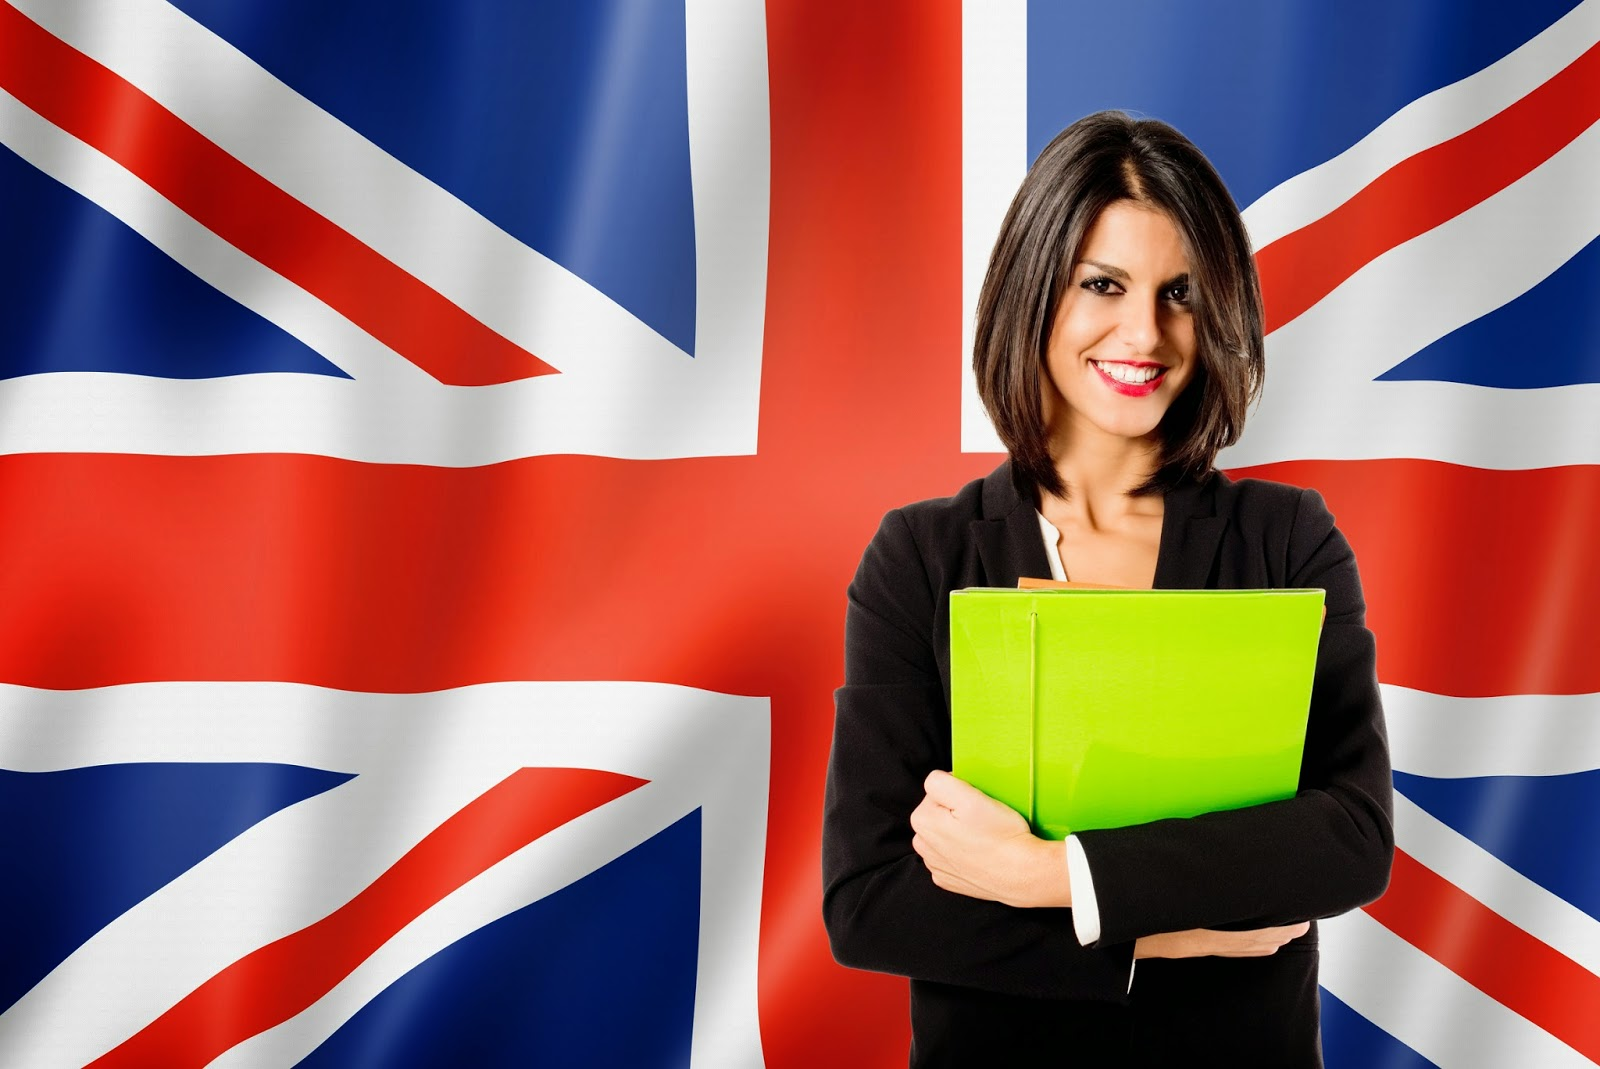 Pic of woman with folder in front of Union Jack flag